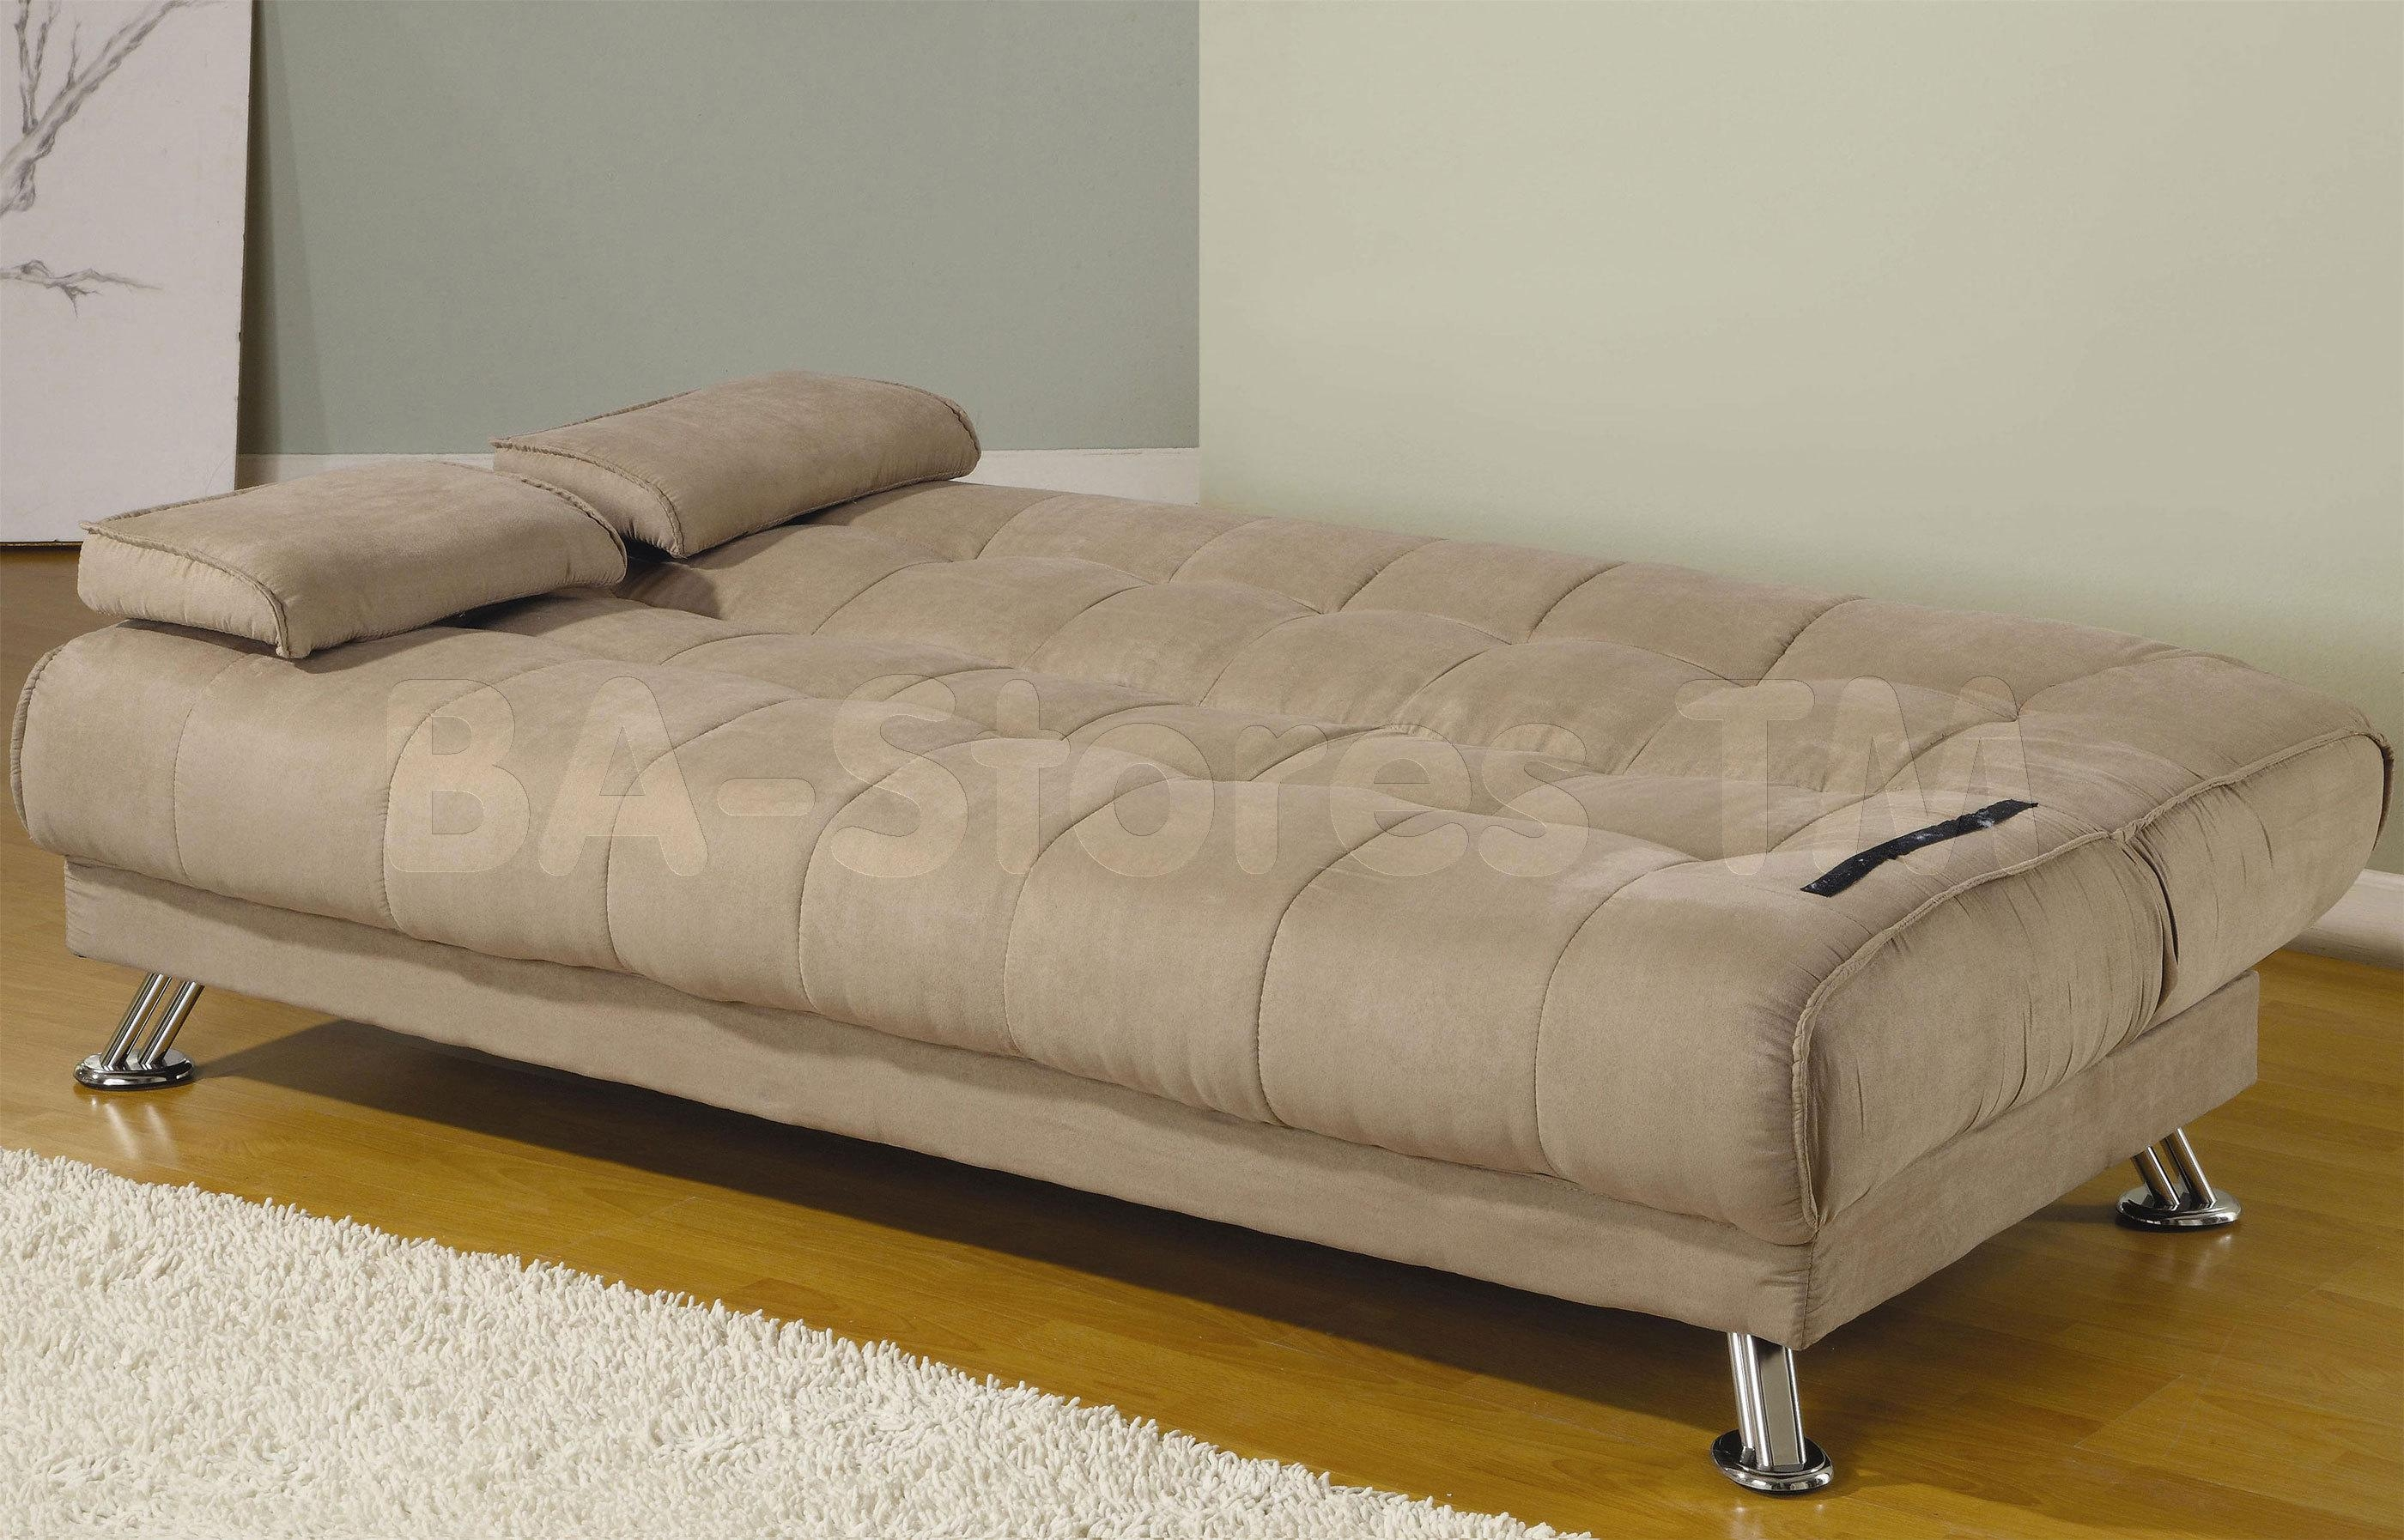 Sofas: Cheap Sofa Sleepers | Futon Sofa Beds | Convertible Sofa Bed Throughout Convertible Futon Sofa Beds (Image 20 of 20)